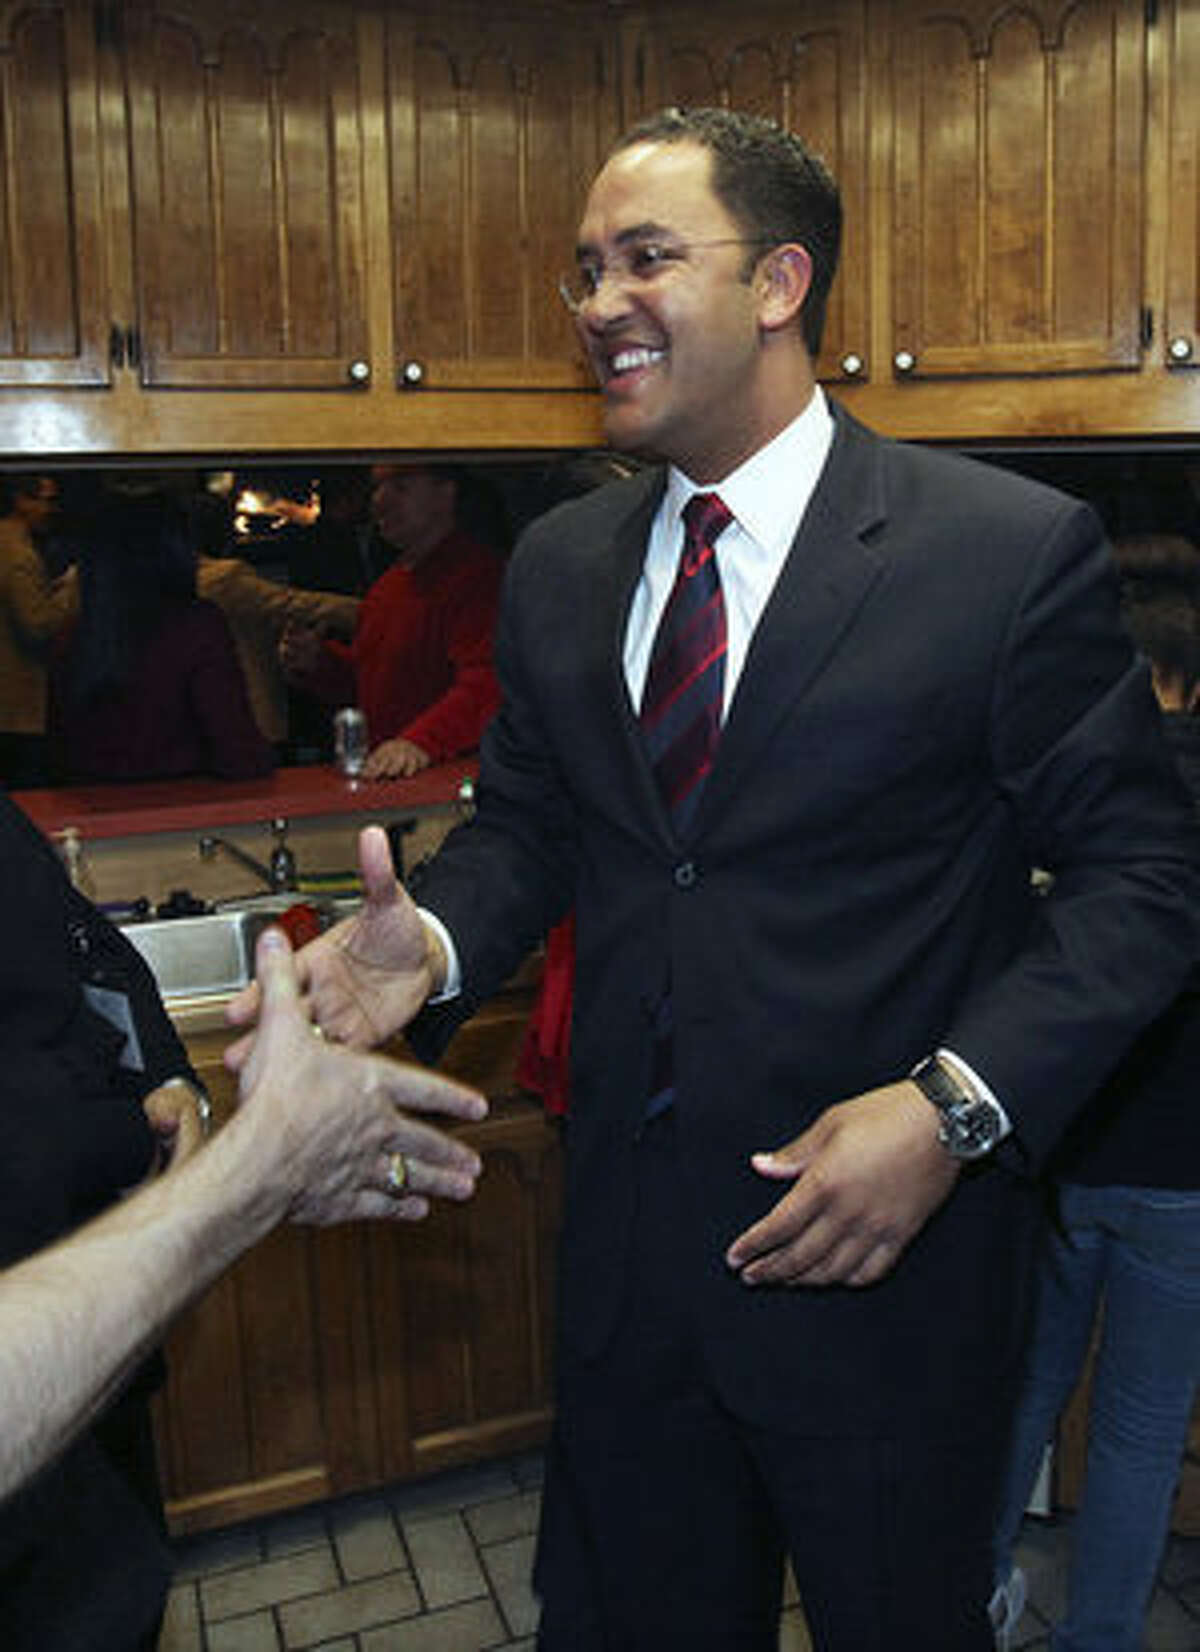 U.S. District 23 Republican hopeful Will Hurd, 32, came in a close second. He will face a runoff with Canseco in April.